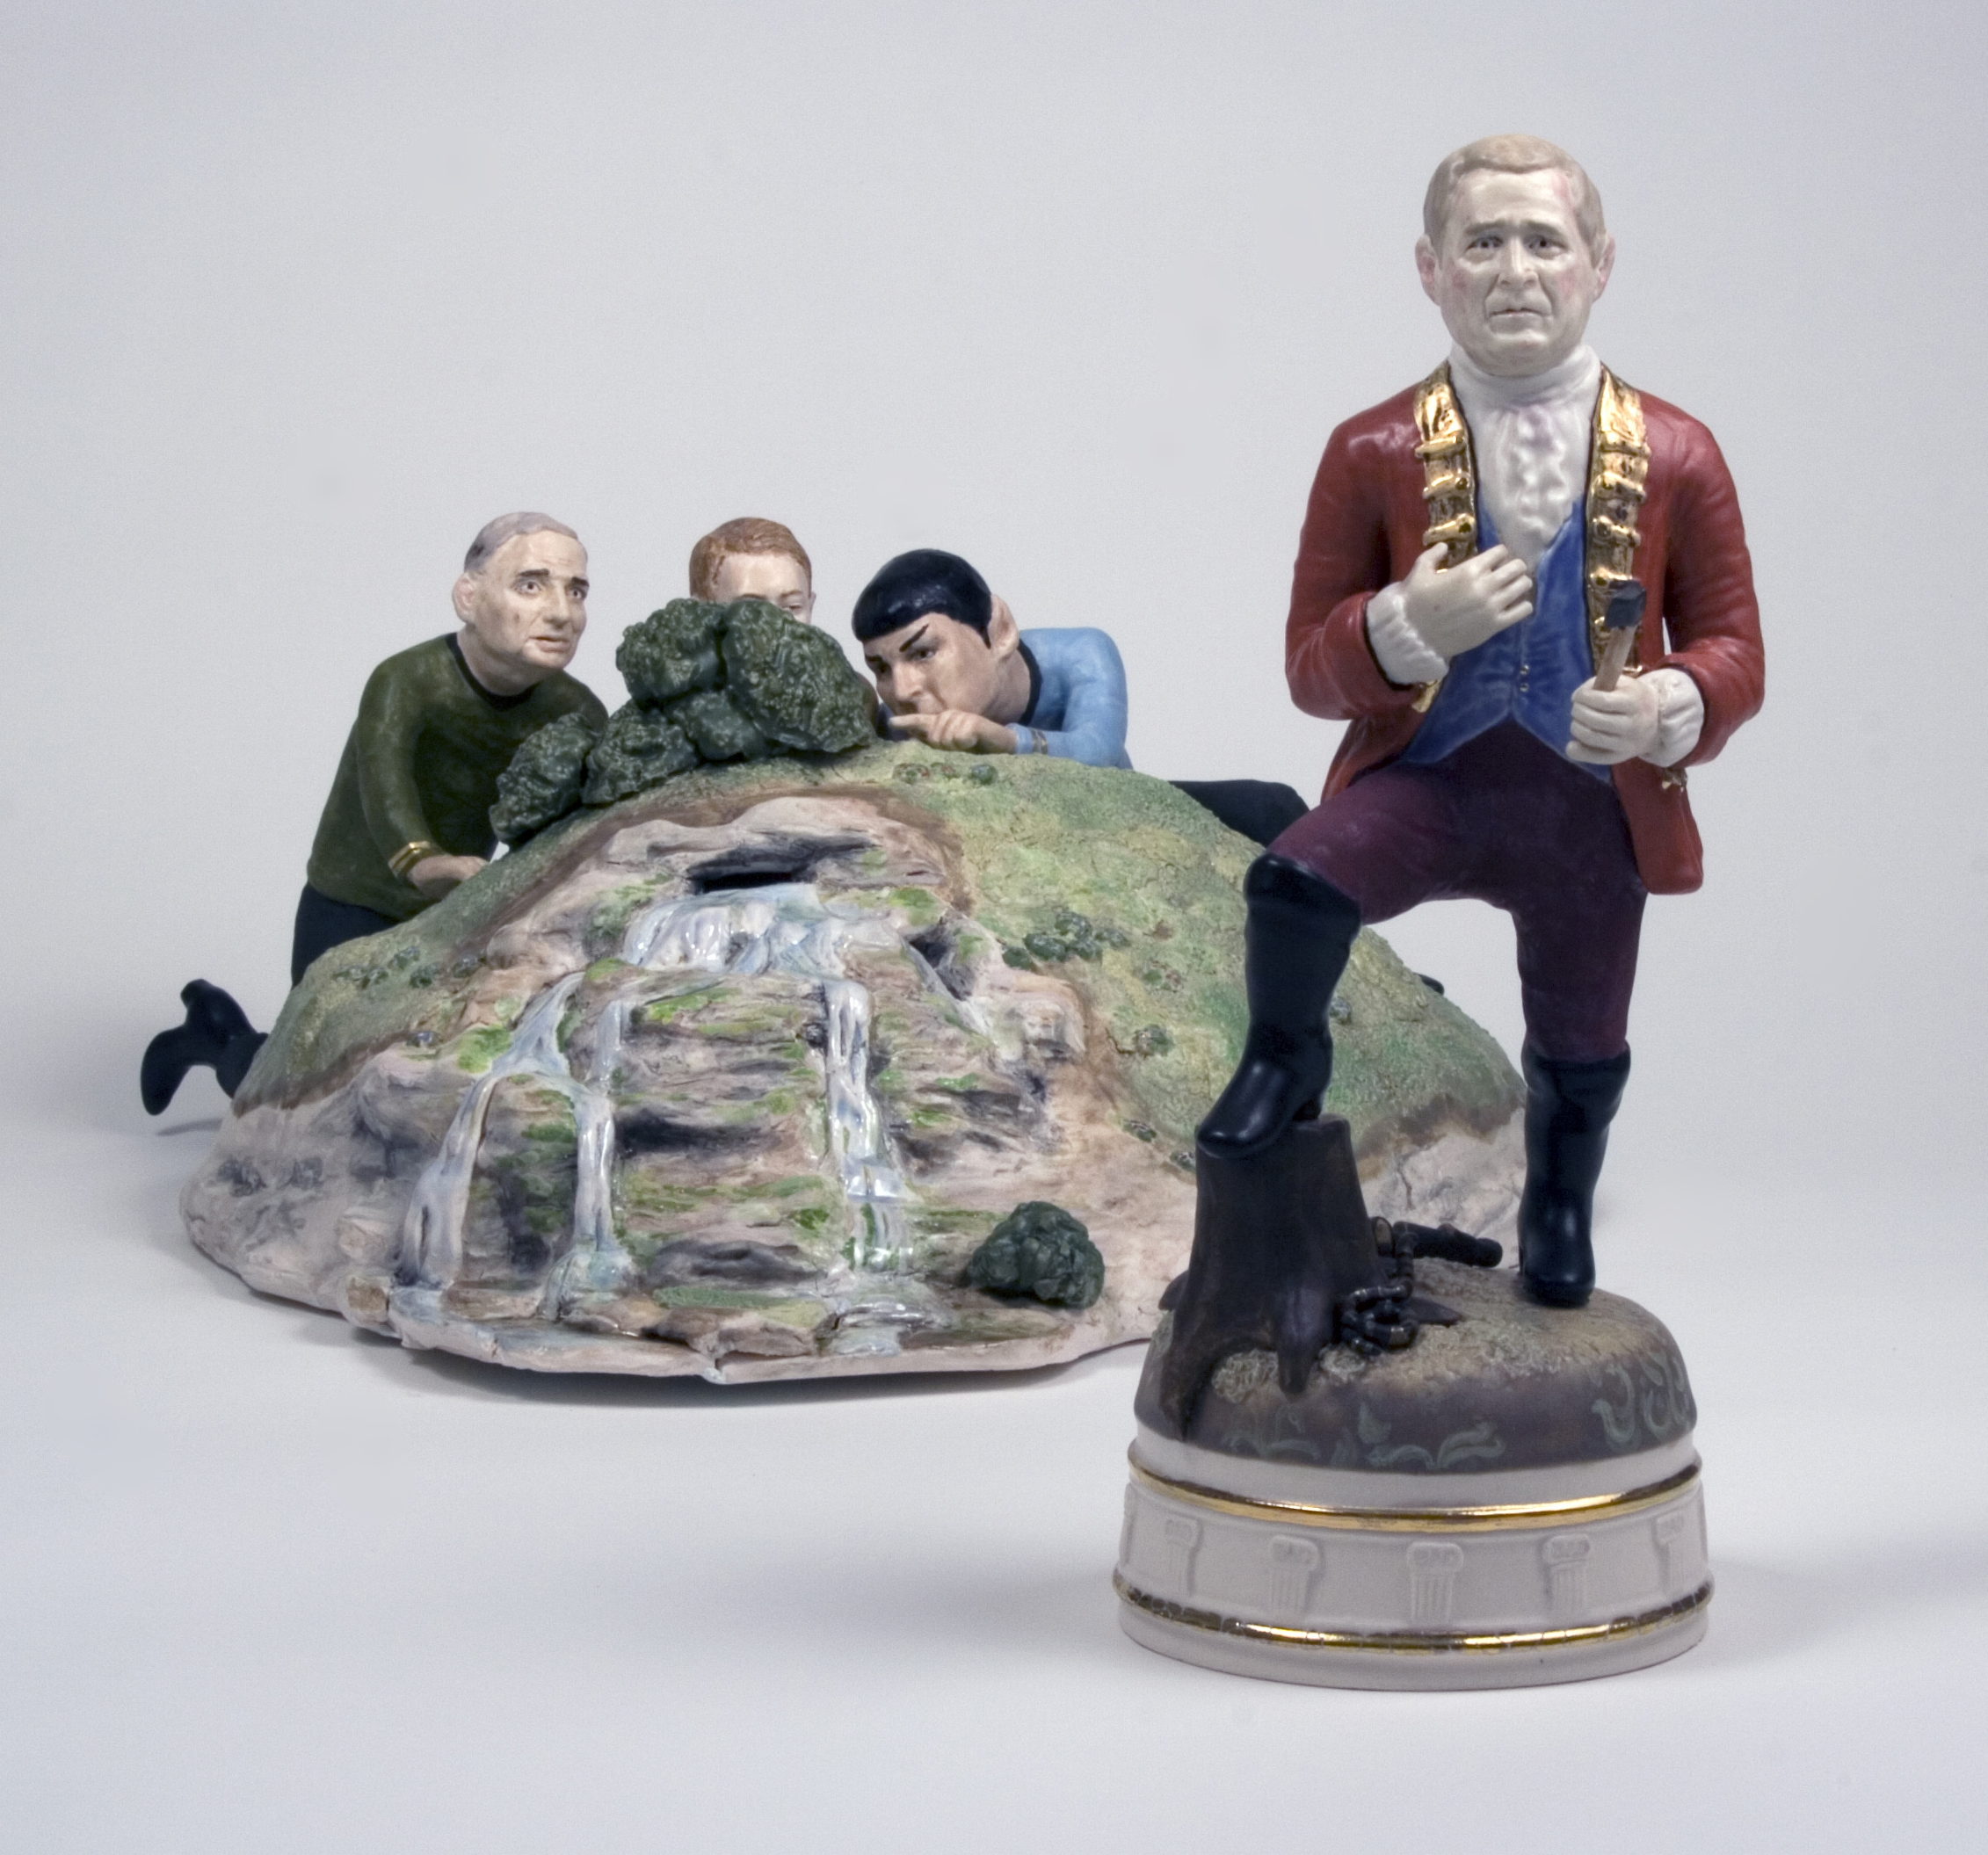 """Untitled Decorative Object #2.2 Starring Thom Yorke, Leonard Nimoy and Ralph Nader, with Special Guest George W.   Glazed porcelain, 12"""" h x 18""""w x variable depth  2007"""